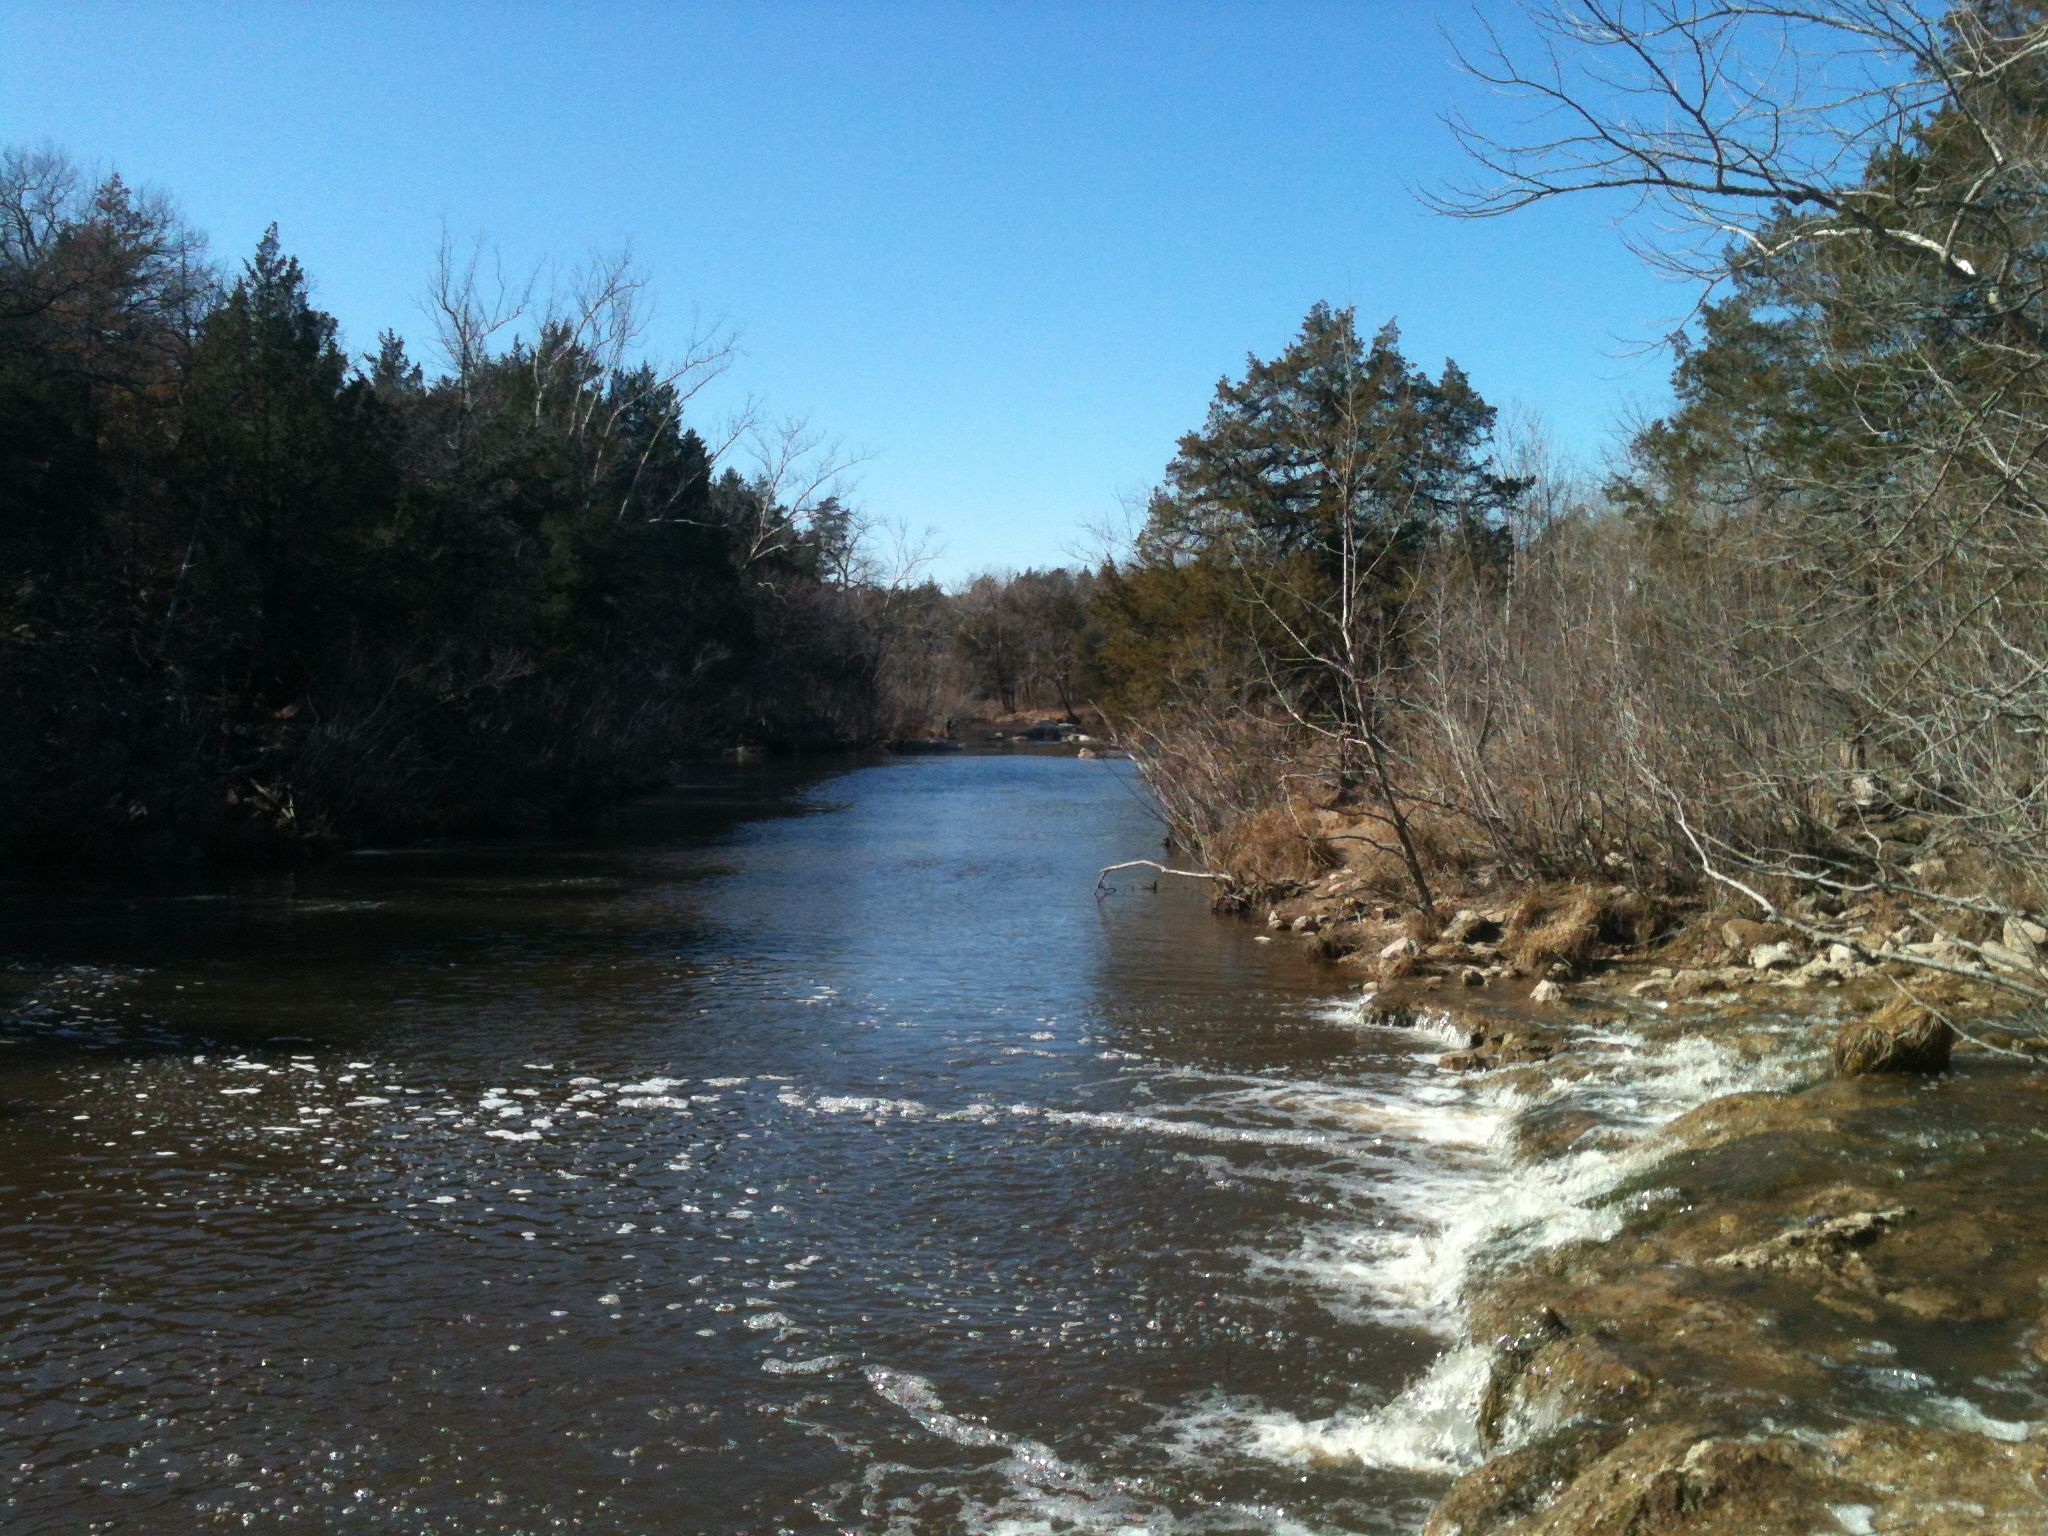 Great place to fish for trout at the blue river near for Fly fishing oklahoma